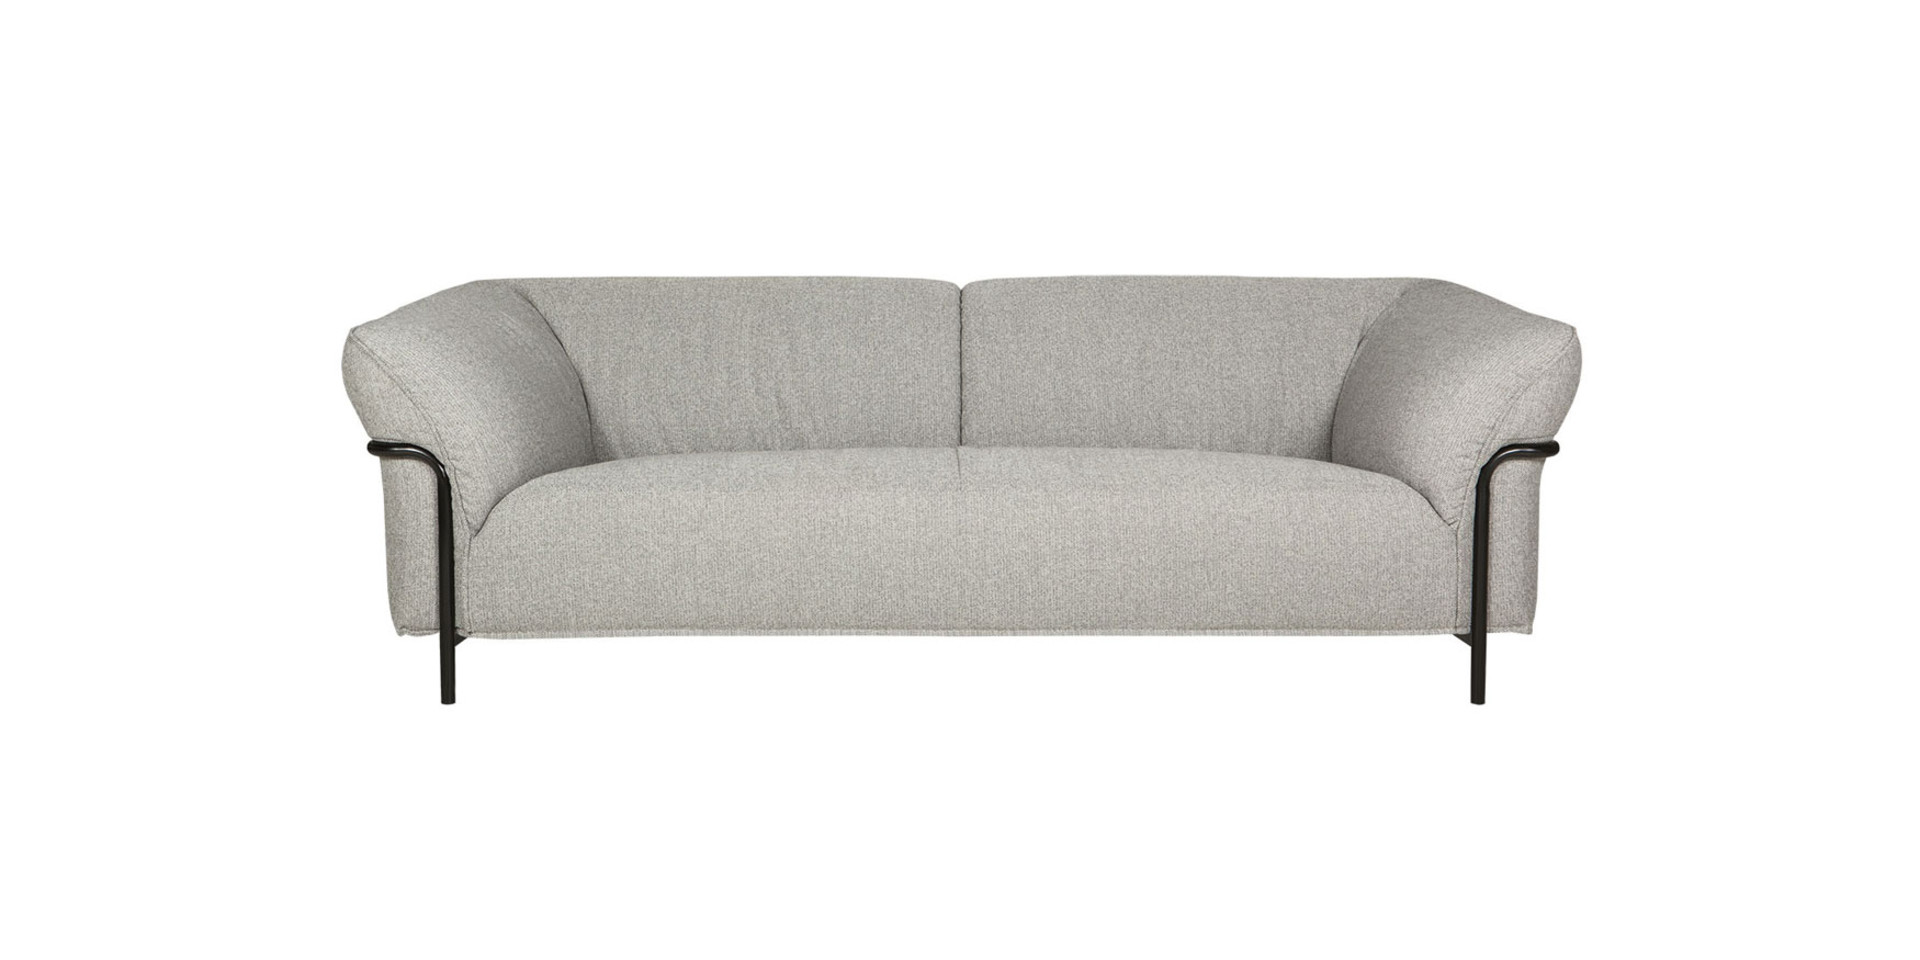 sits-doris-canape-2seater_origin51_light_grey_7